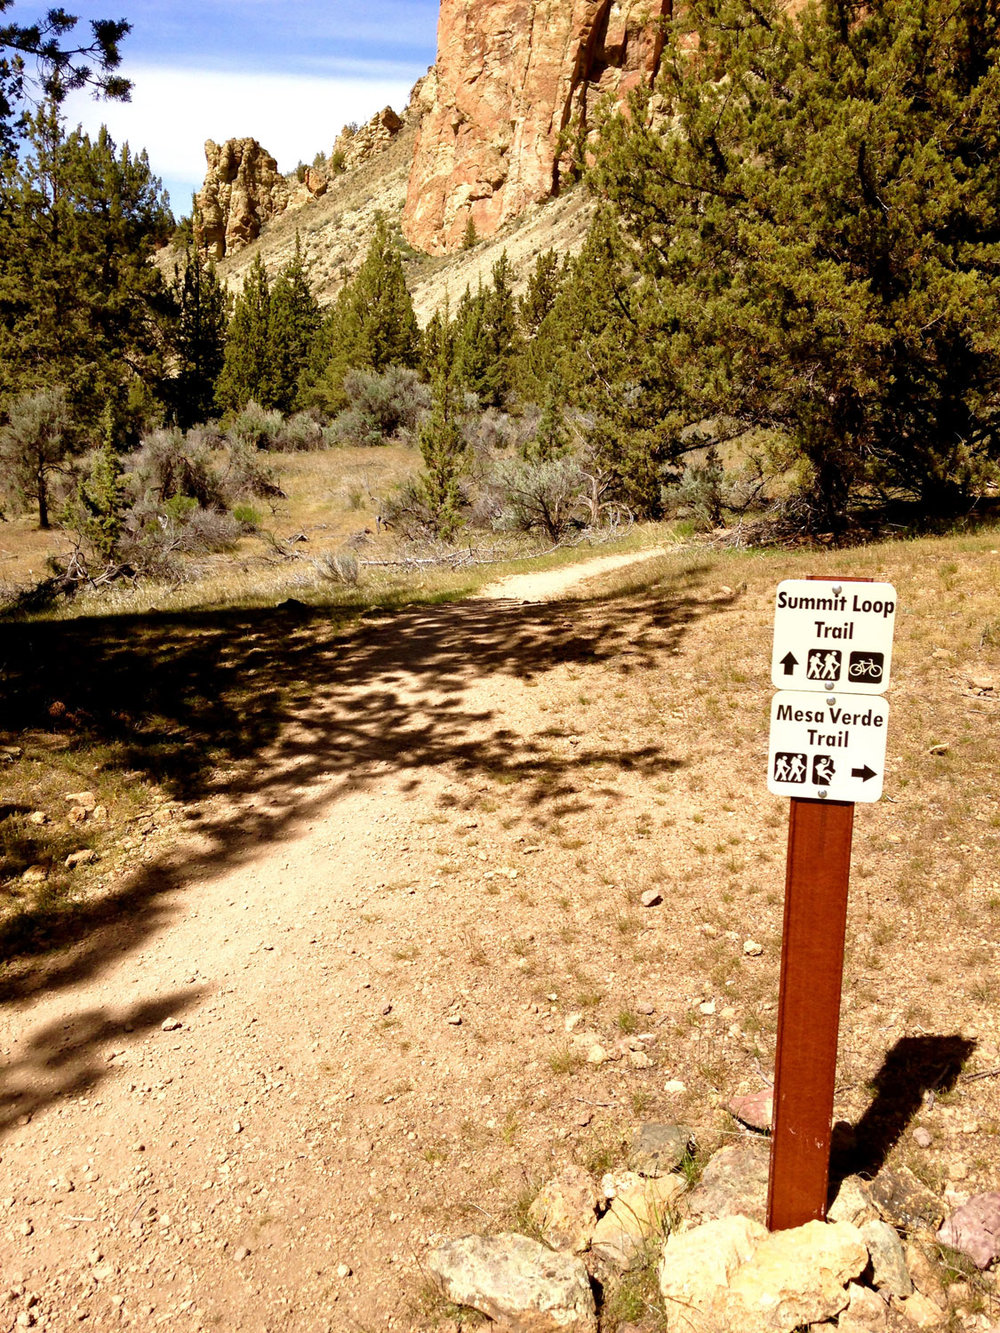 The Summit Trail starts at the junction of the River Trail and the Mesa Verde Trail at Smith Rock State Park.